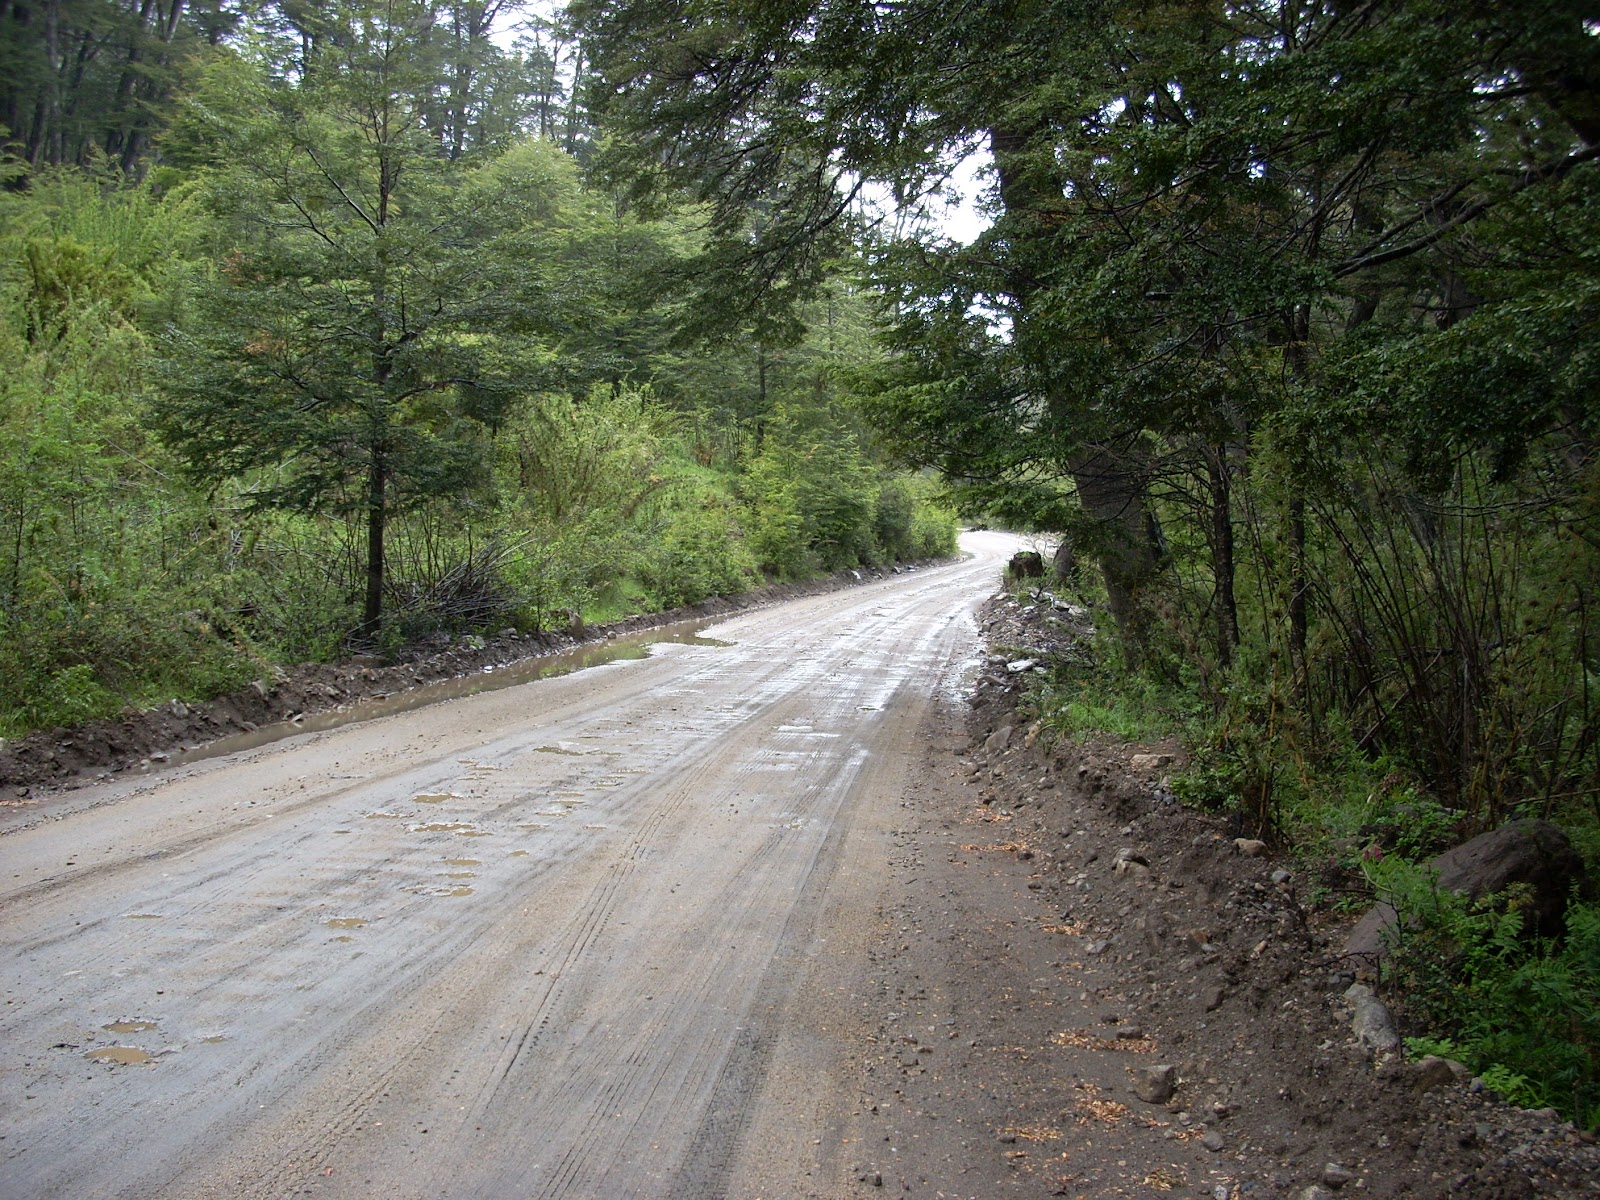 Cold, wet, narrow dirt road. Good times